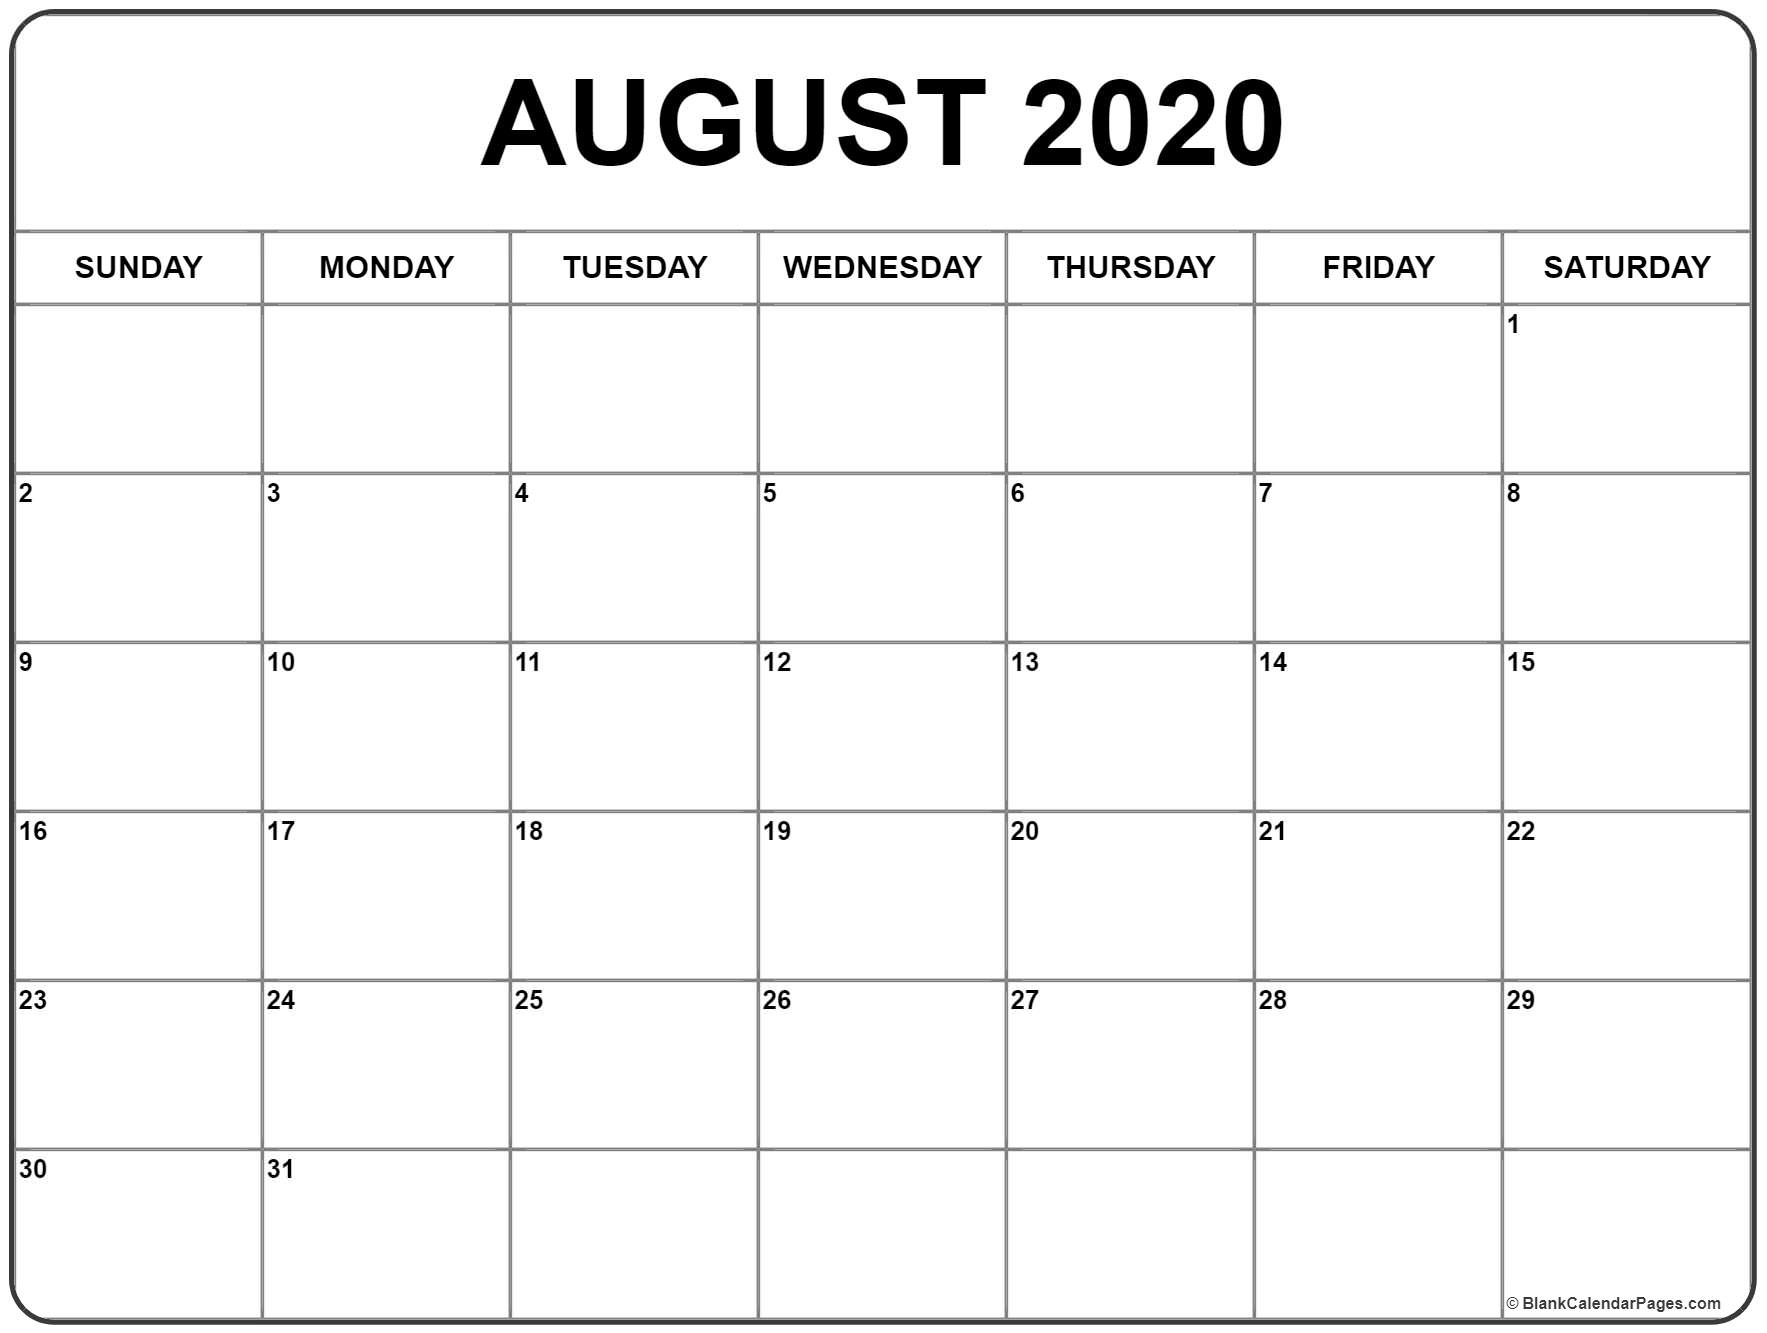 Catch August Calendar To Type On 2021